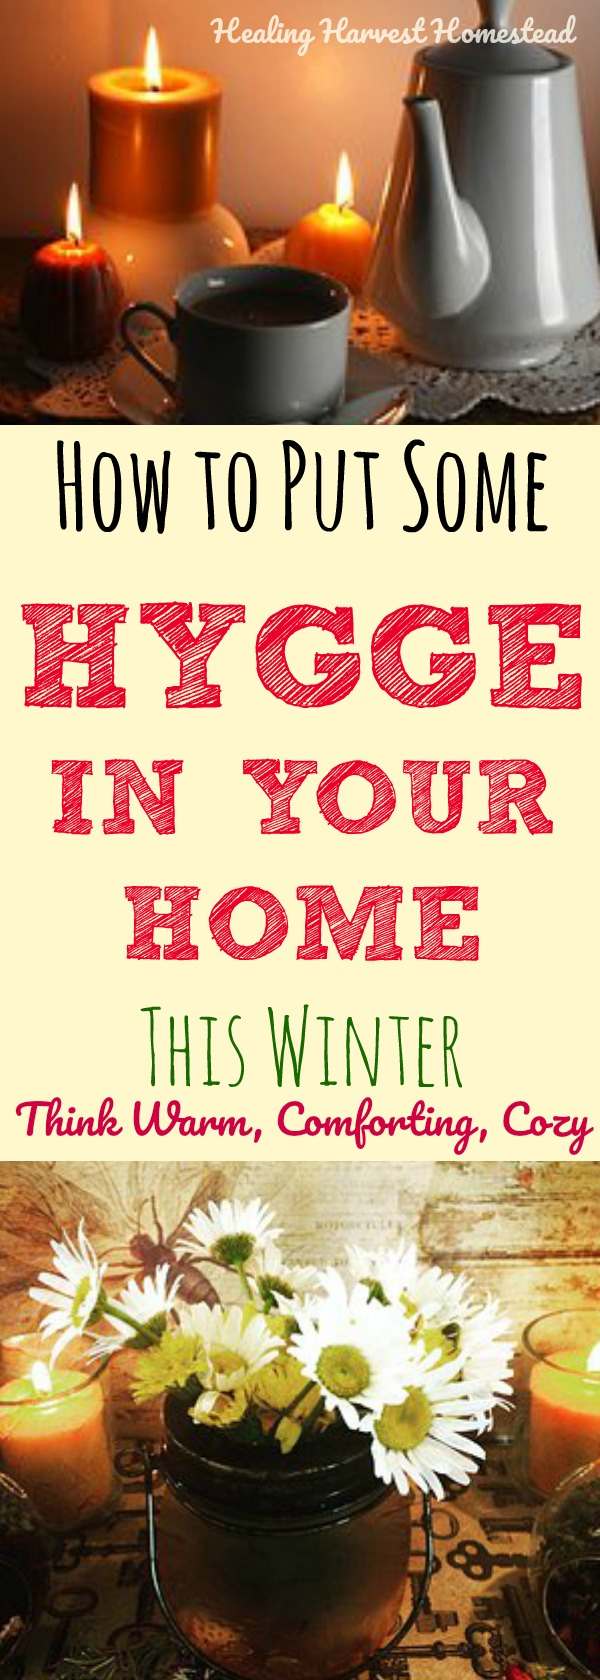 "How to create a Hygge Home. A home that exudes ""Hygge"" is comforting, cozy, warm, and delightful. Hygge can help with seasonal sadness too (S.A.D.) Find out what hygge is, how the Danish do Hygge, and why hygge is an important concept to learn about from the most happy country in the world: Denmark. Learn how to create this warm, joyful feeling in your own home, office, and environment! #healingharvesthomestead #hygge #winterhygge #howto #SAD"